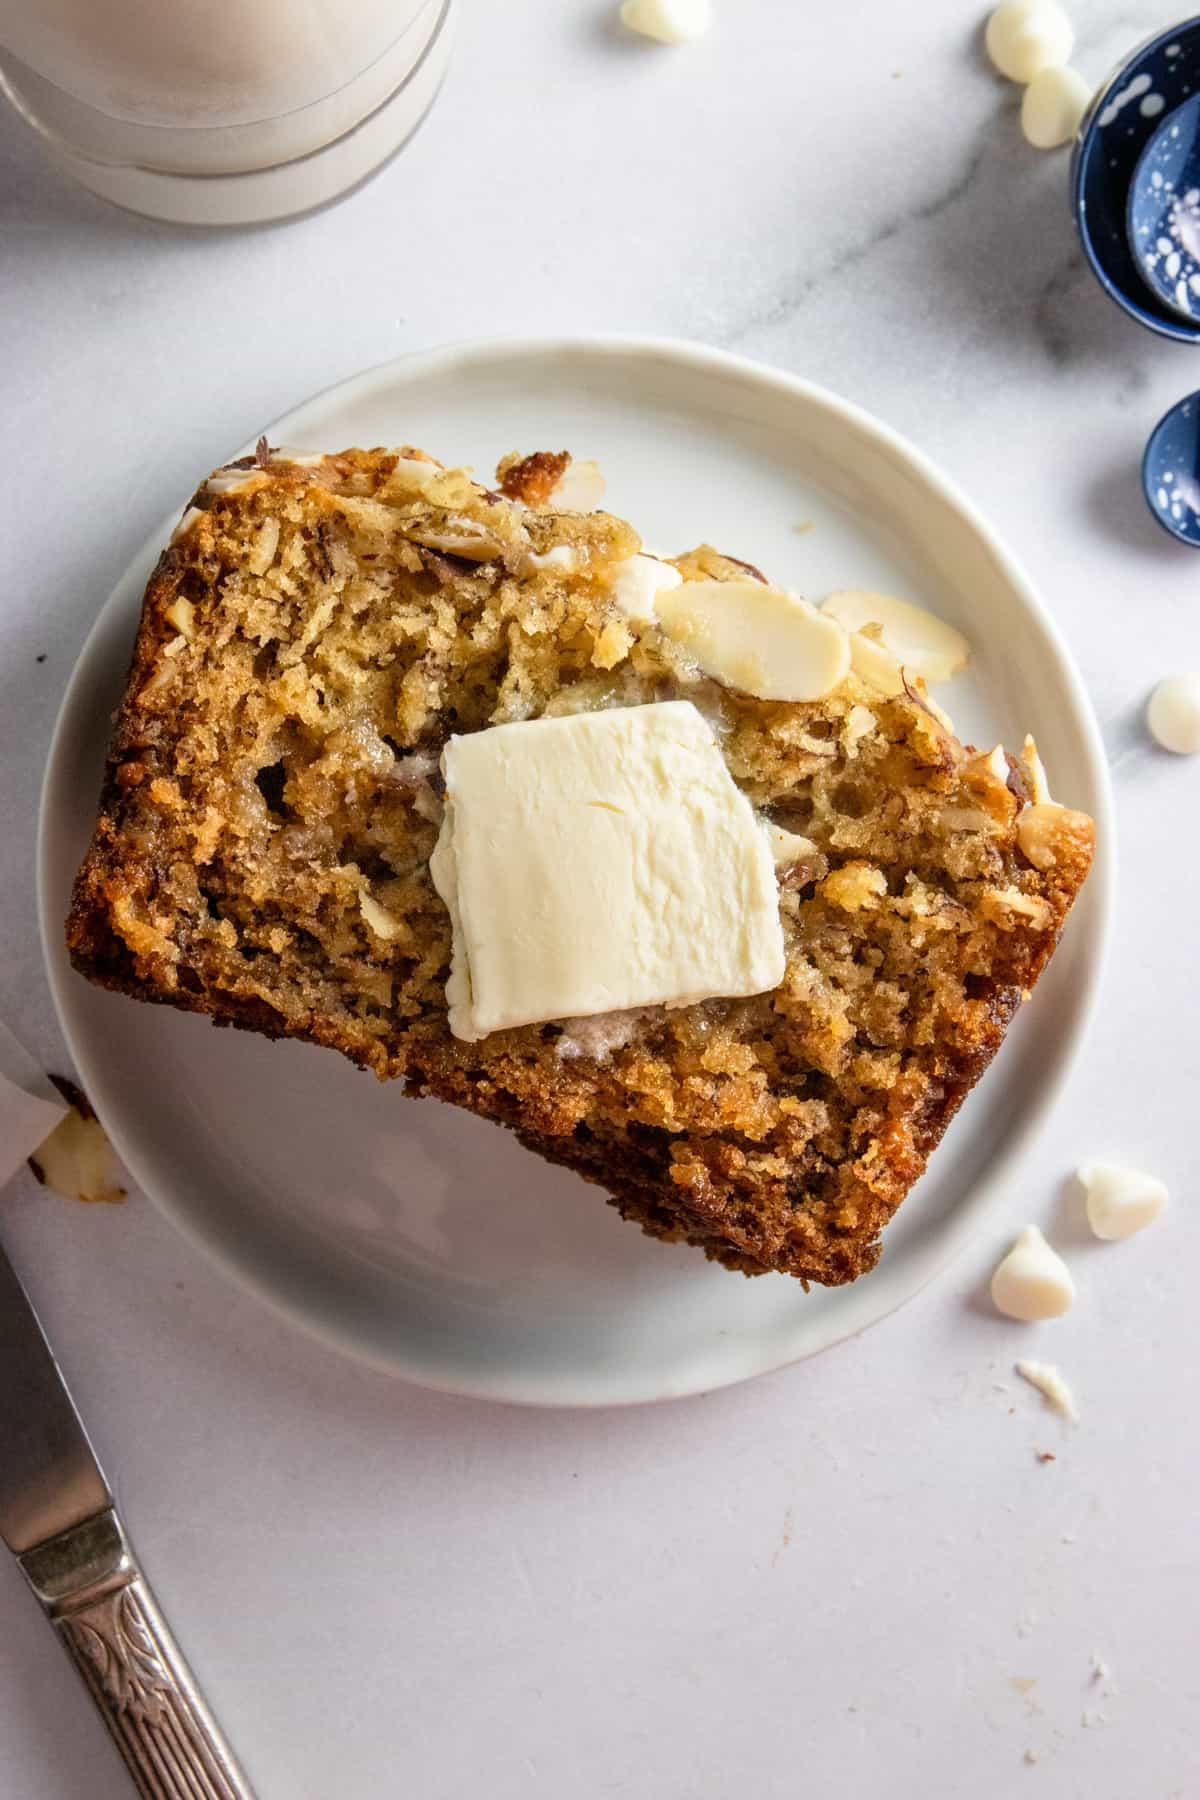 Banana bread made with ripe bananas on plate with butter.